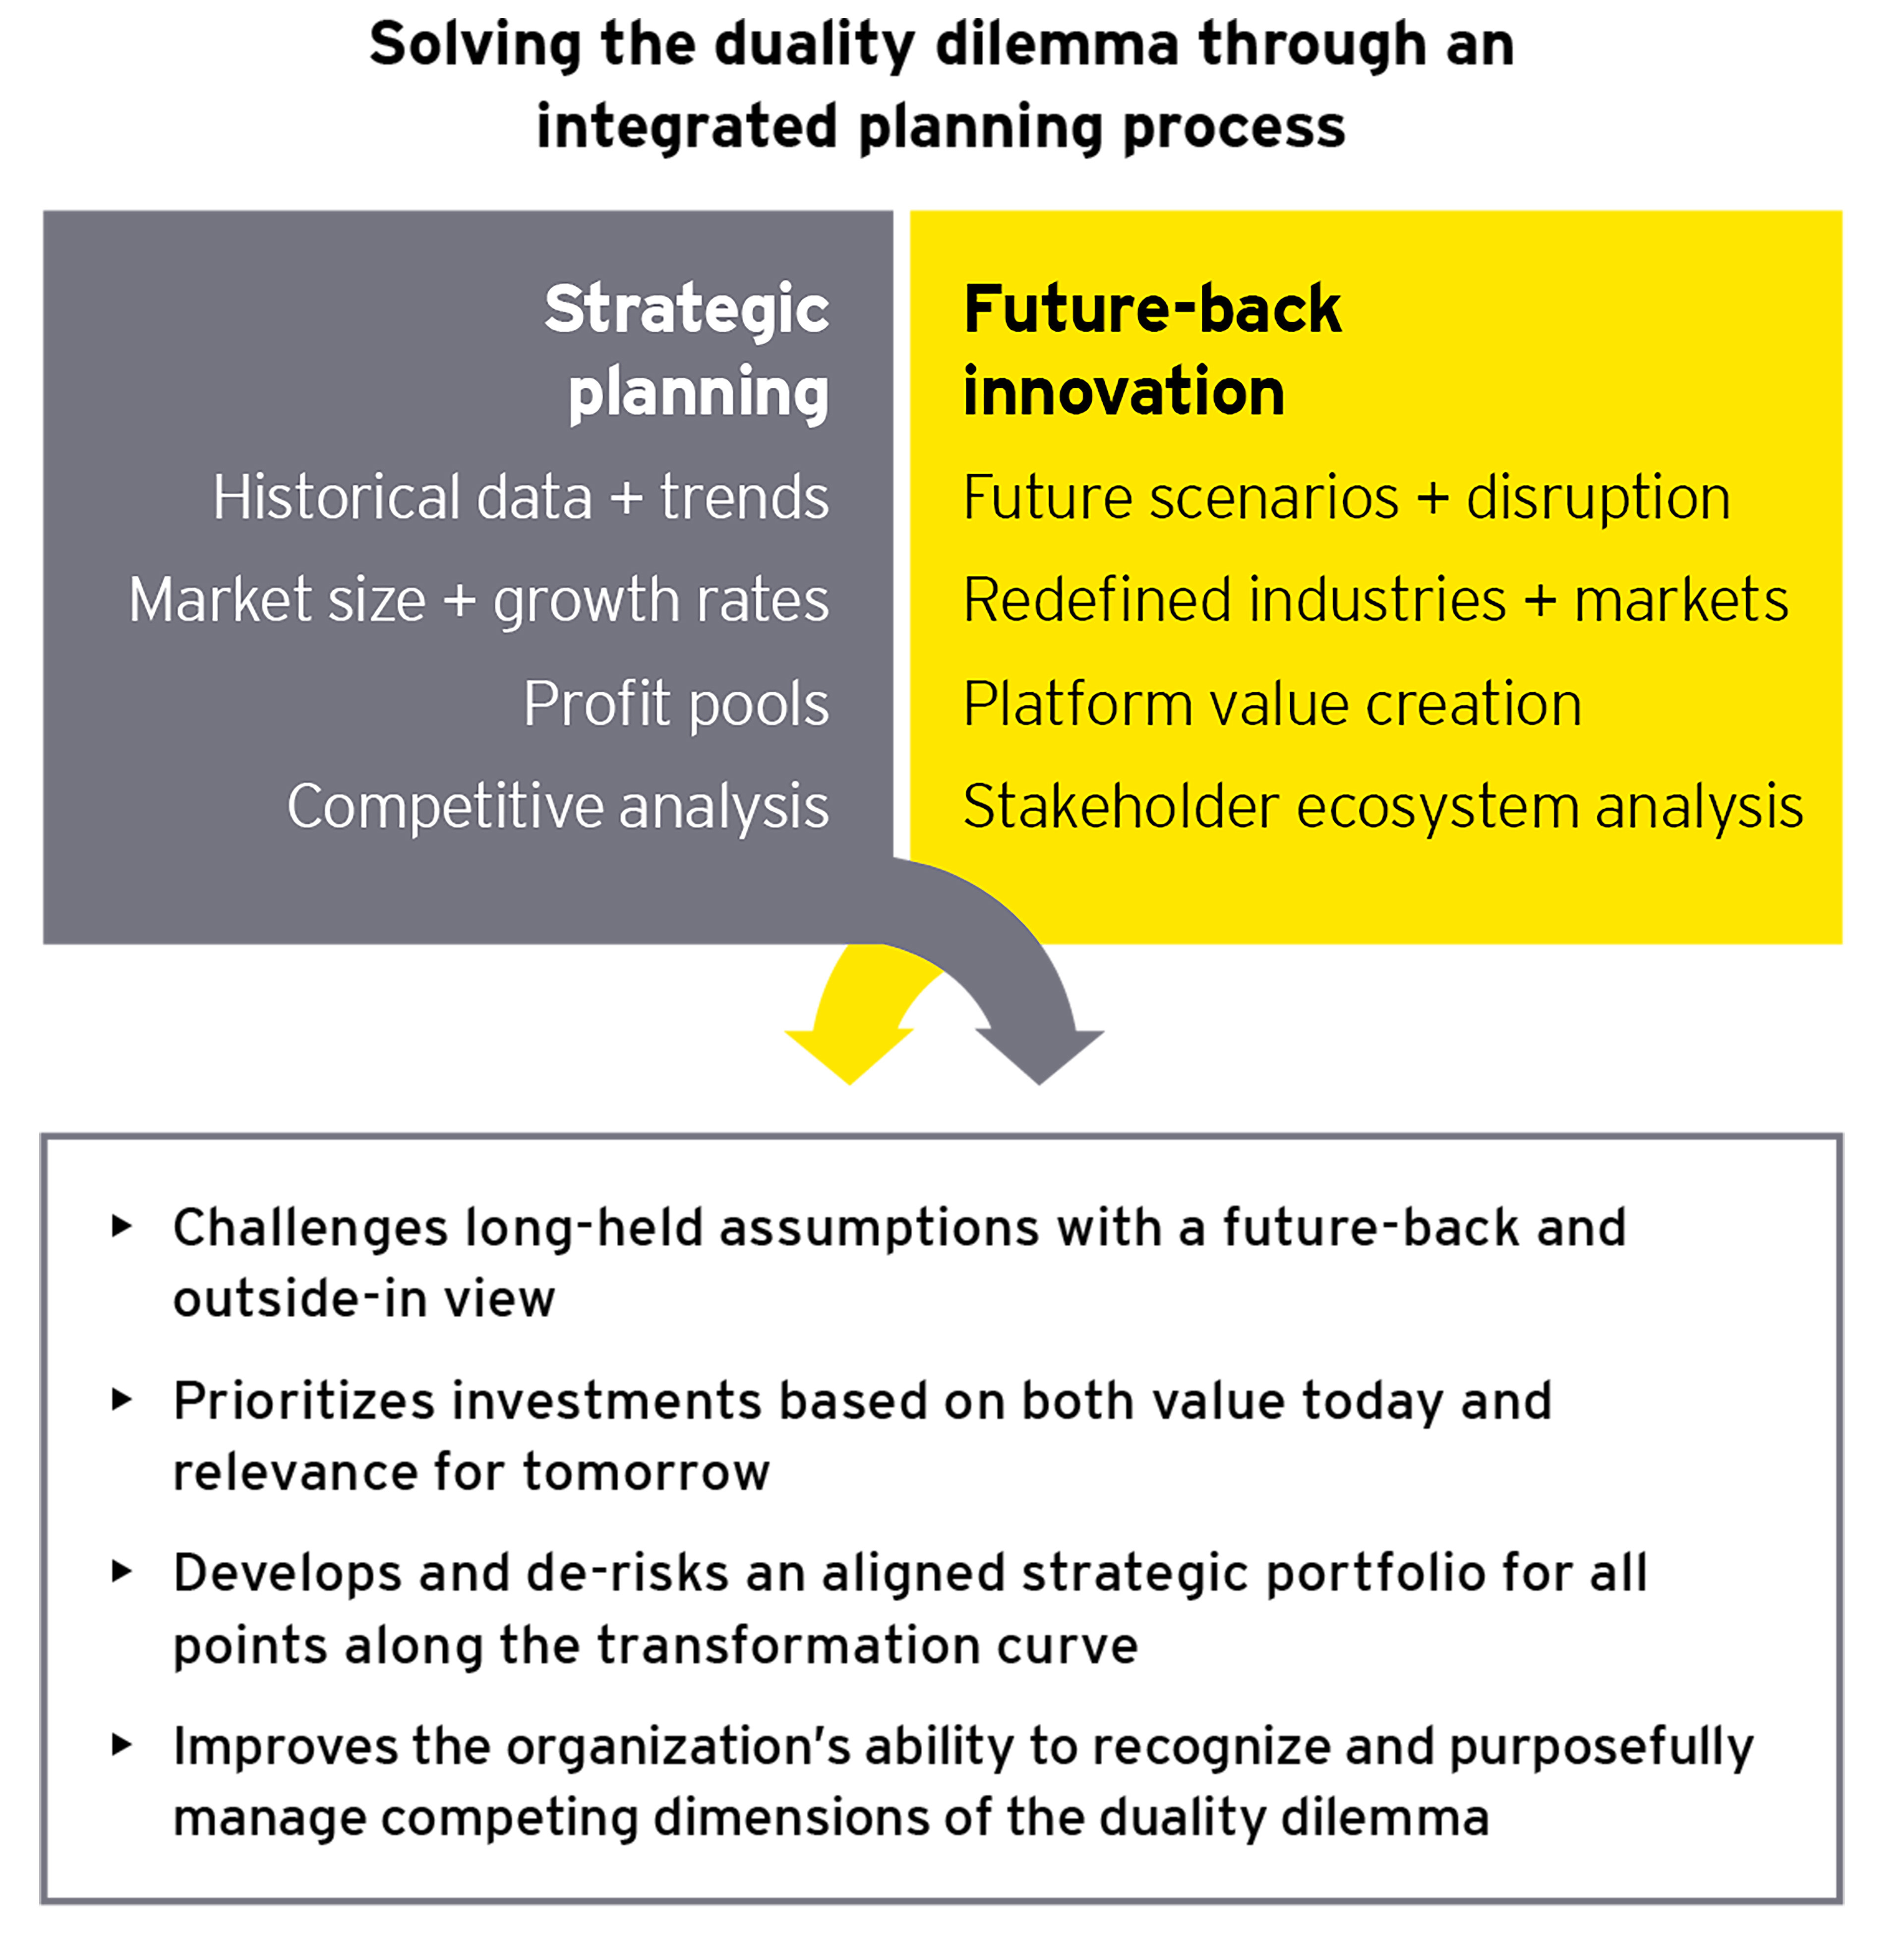 Solving the dualty dilemma through an integrated planning process